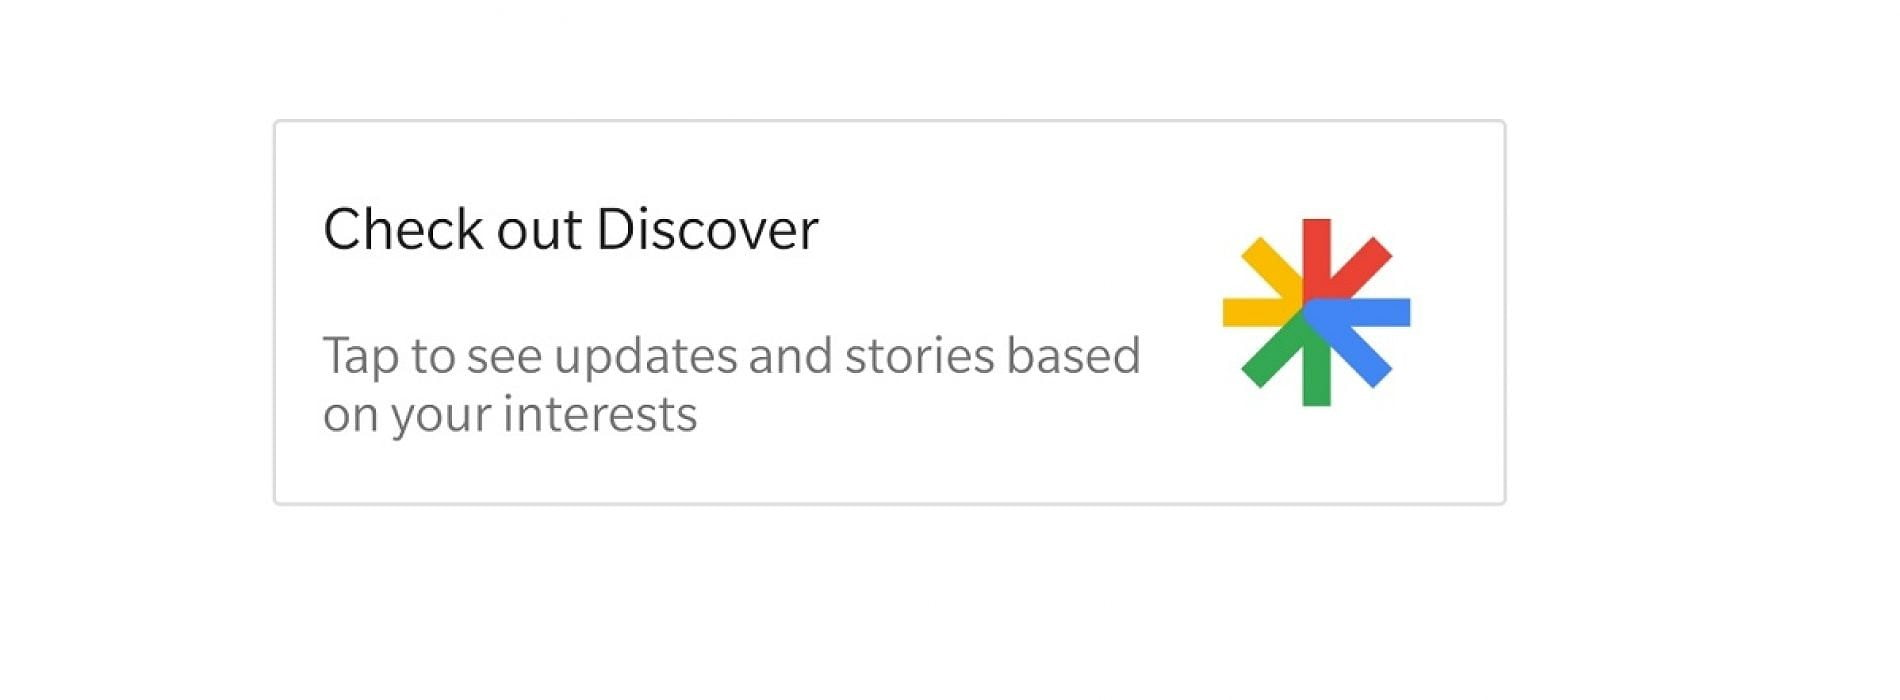 How to activate or deactivate Google Discover on Android?